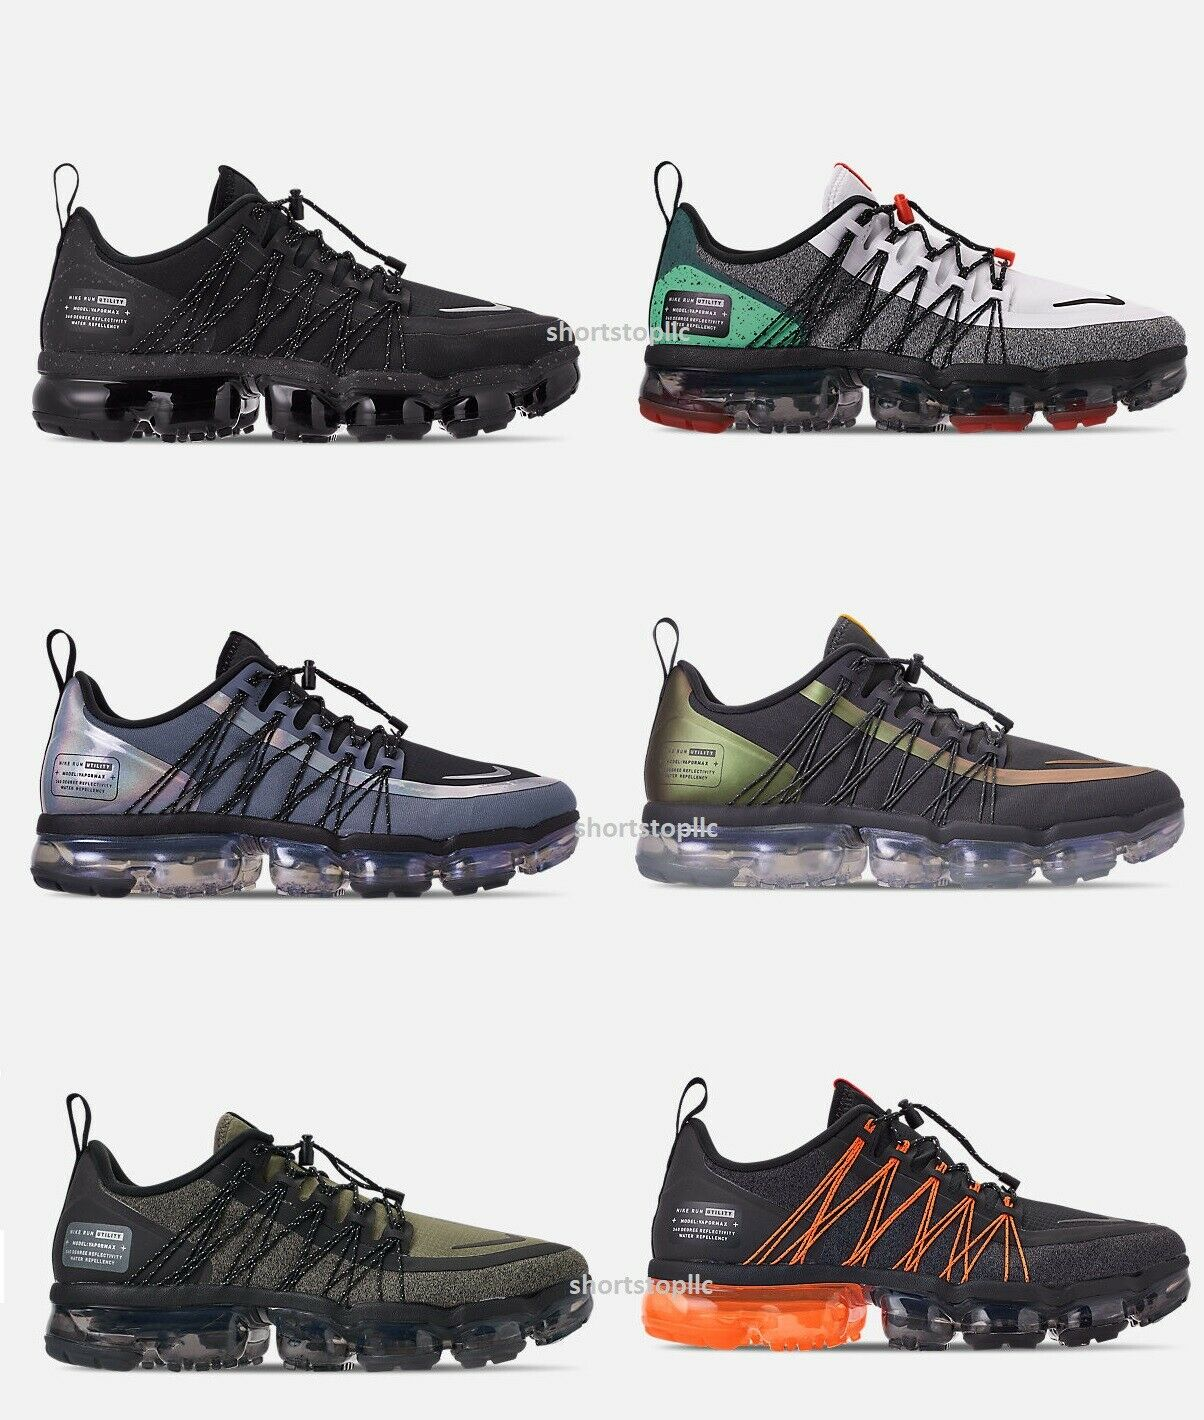 NEW Nike Air VaporMax Run Utility Silver Men's Running shoes Sneakers ALL STYLES